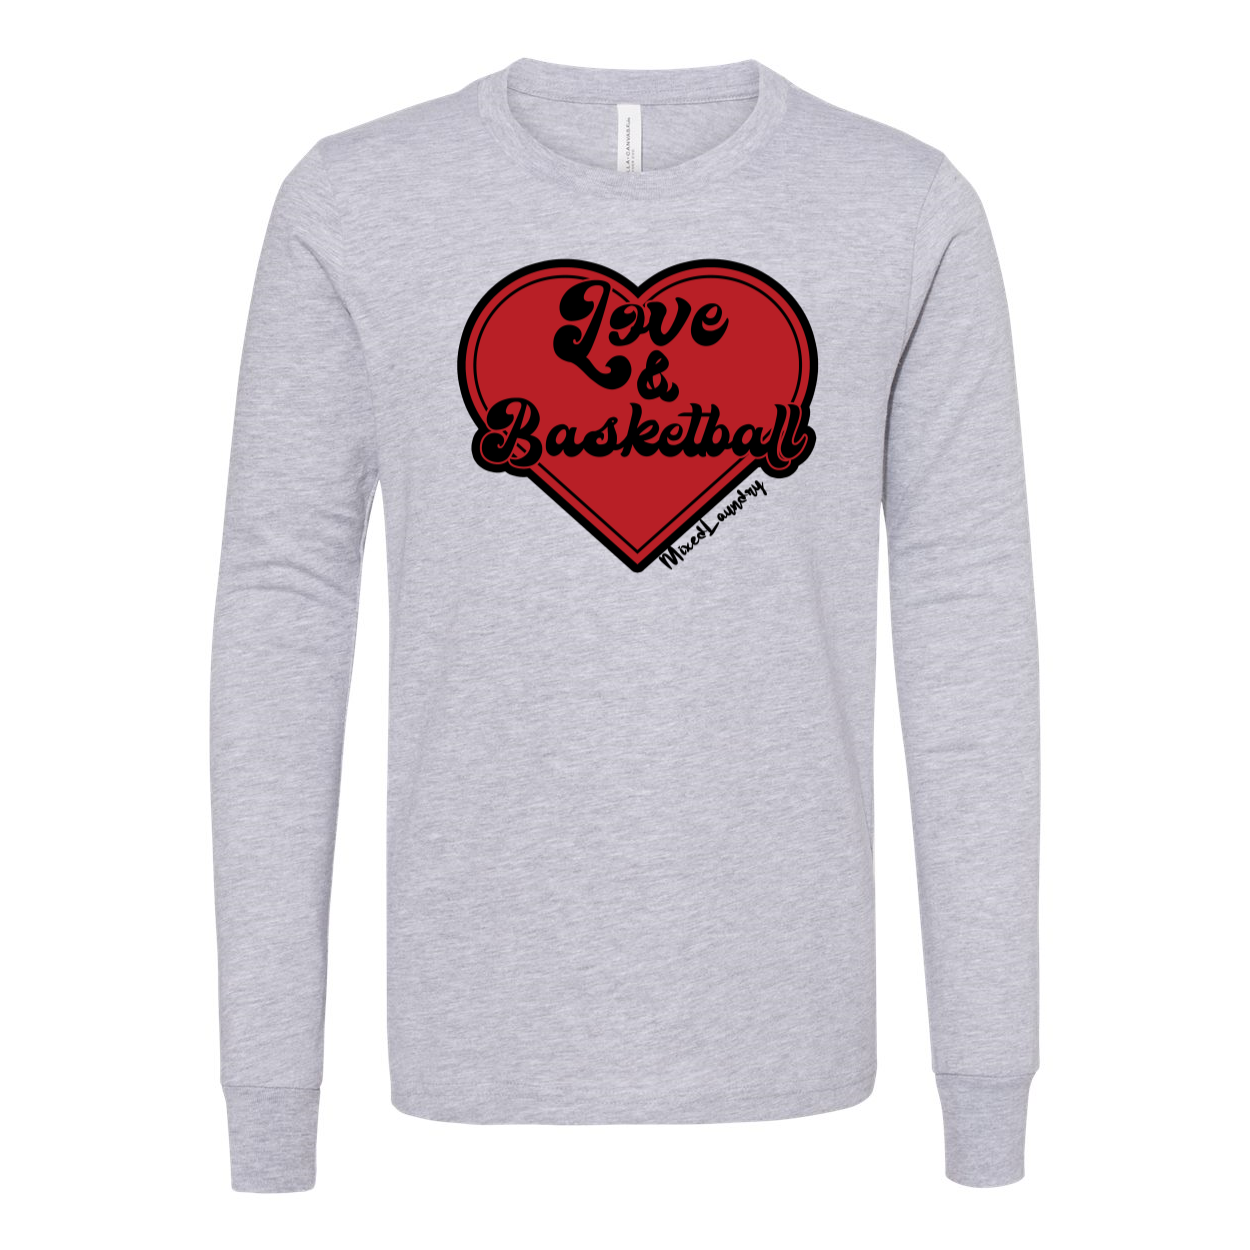 Love & Basketball | Youth Long Sleeve Tee